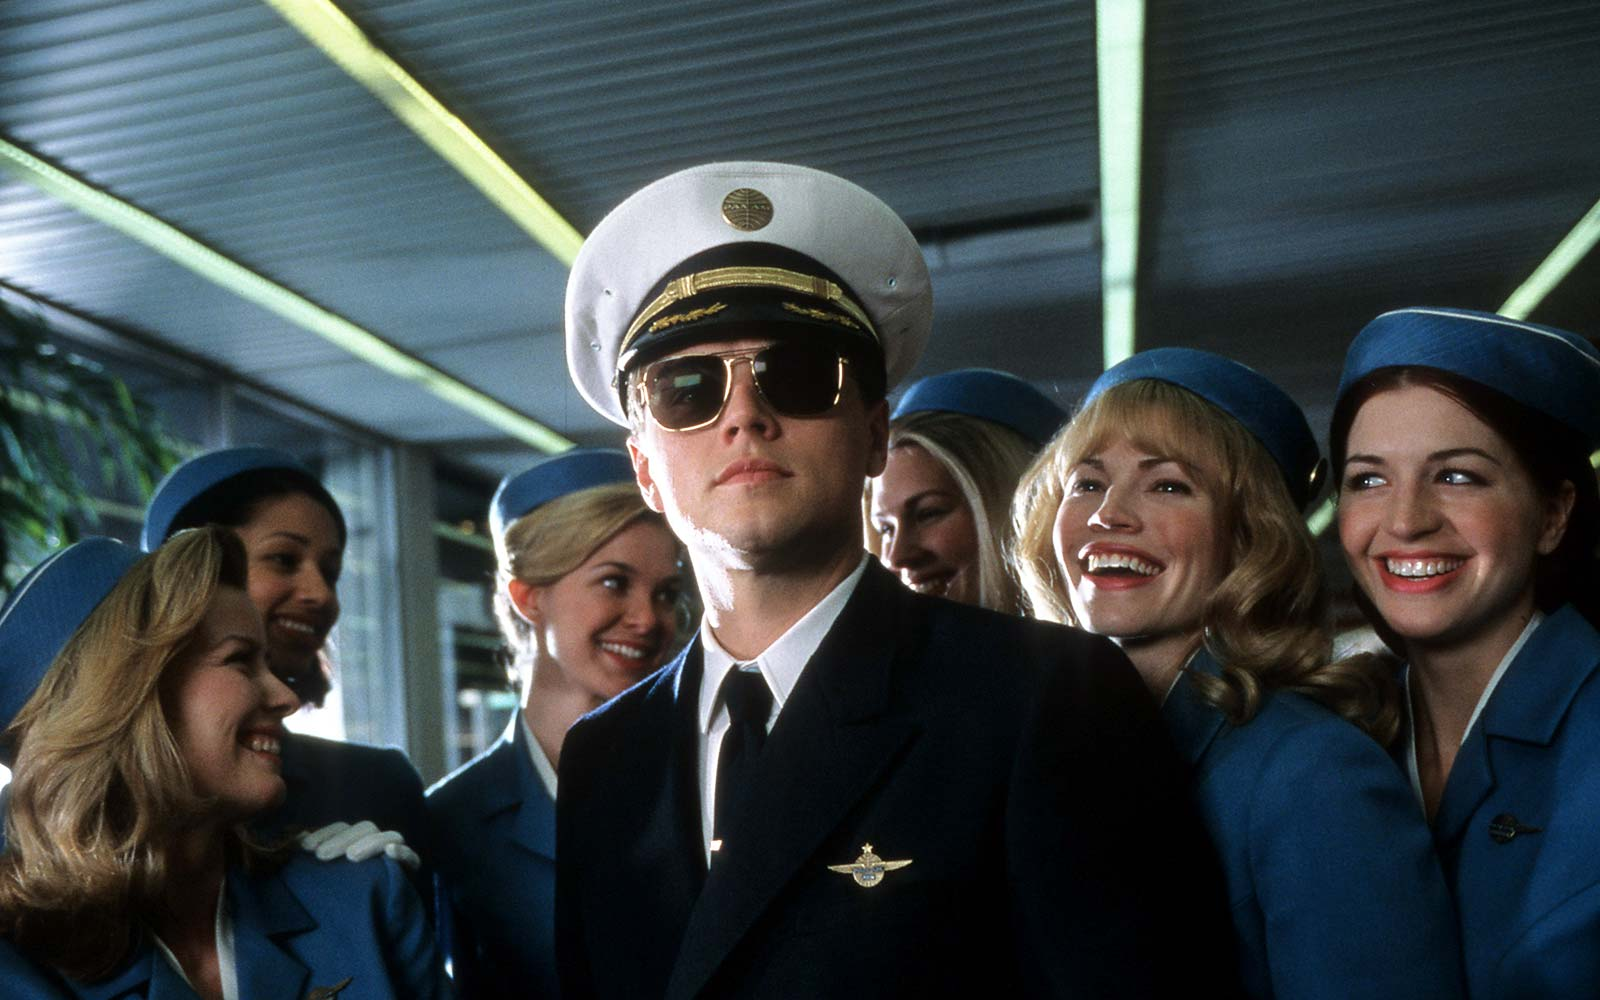 Leonardo DiCaprio with airline stewardess surrounding him in a scene from the film 'Catch Me If You Can' travel pilot